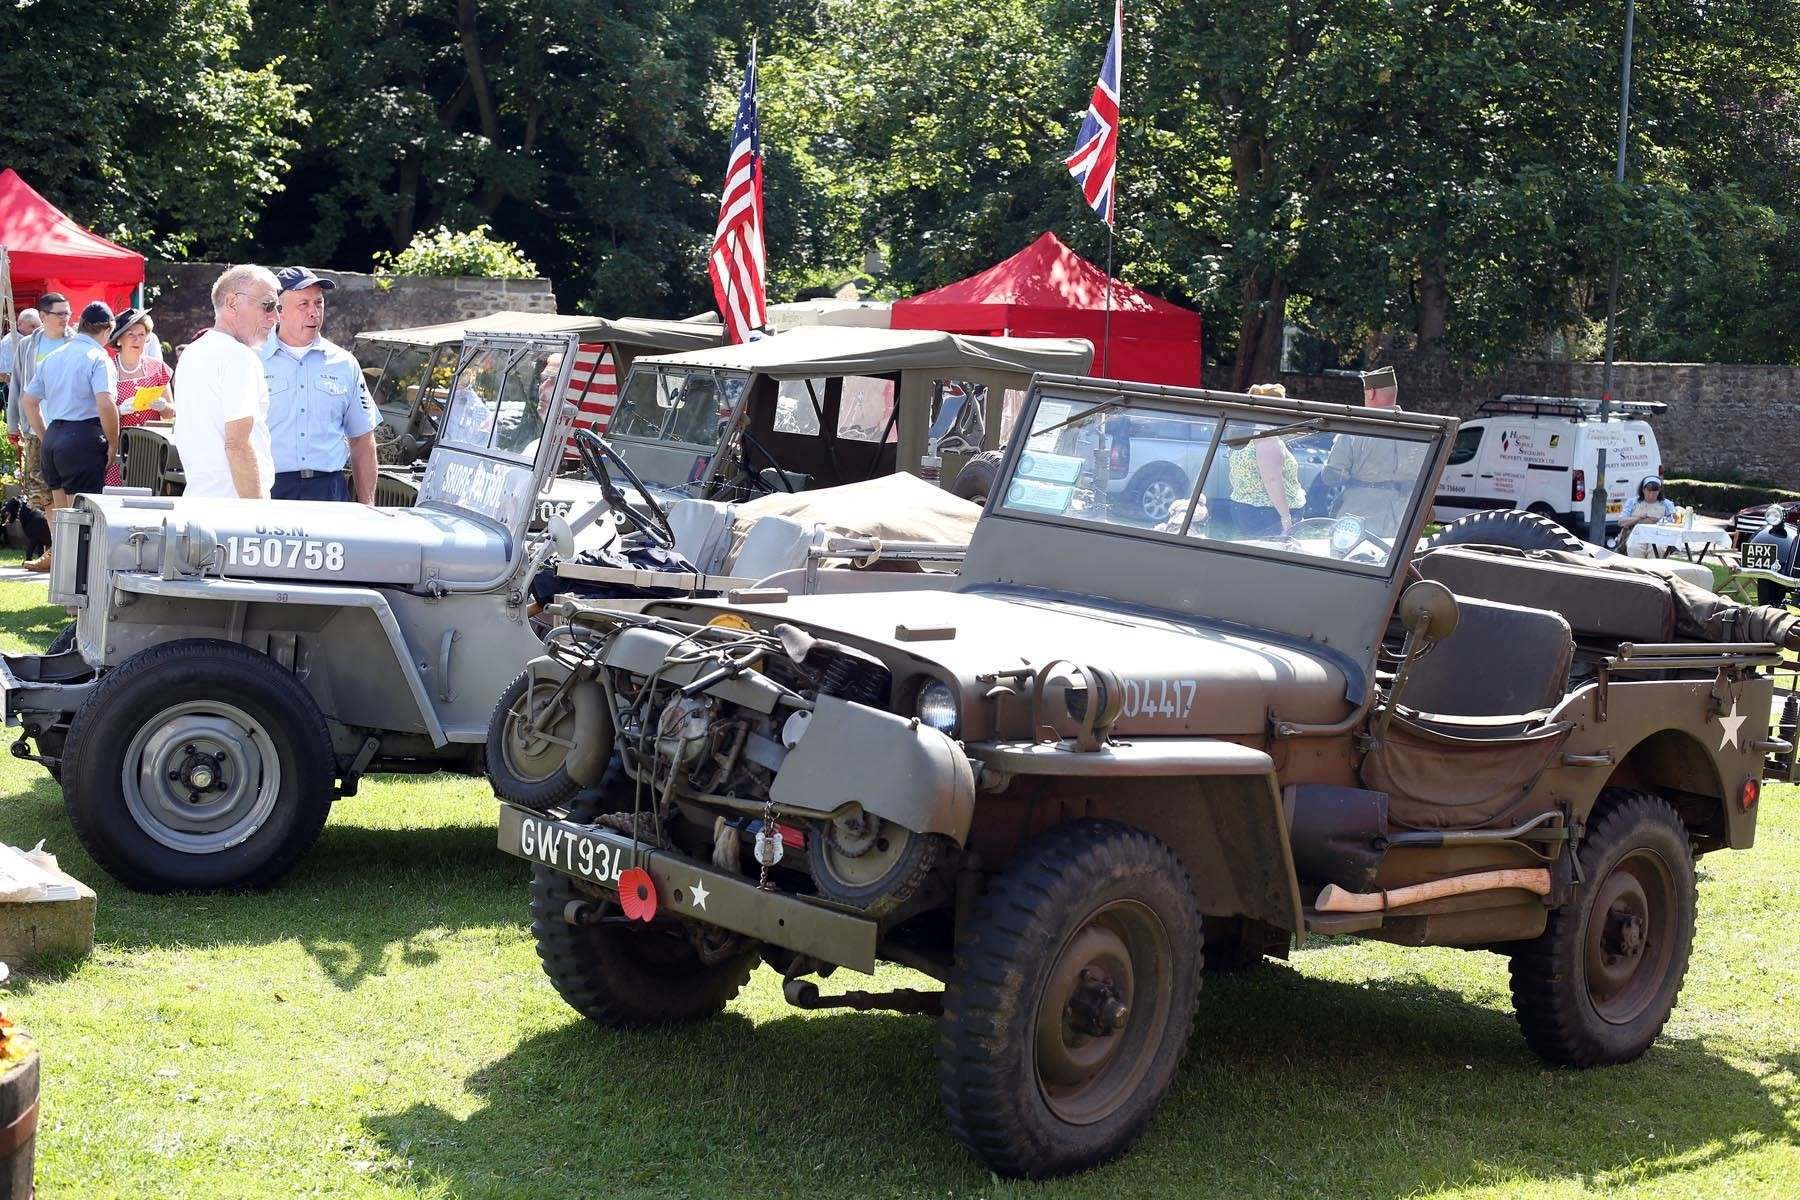 Hundreds enjoy weekend of fun, sport and nostalgia in Sedgefield